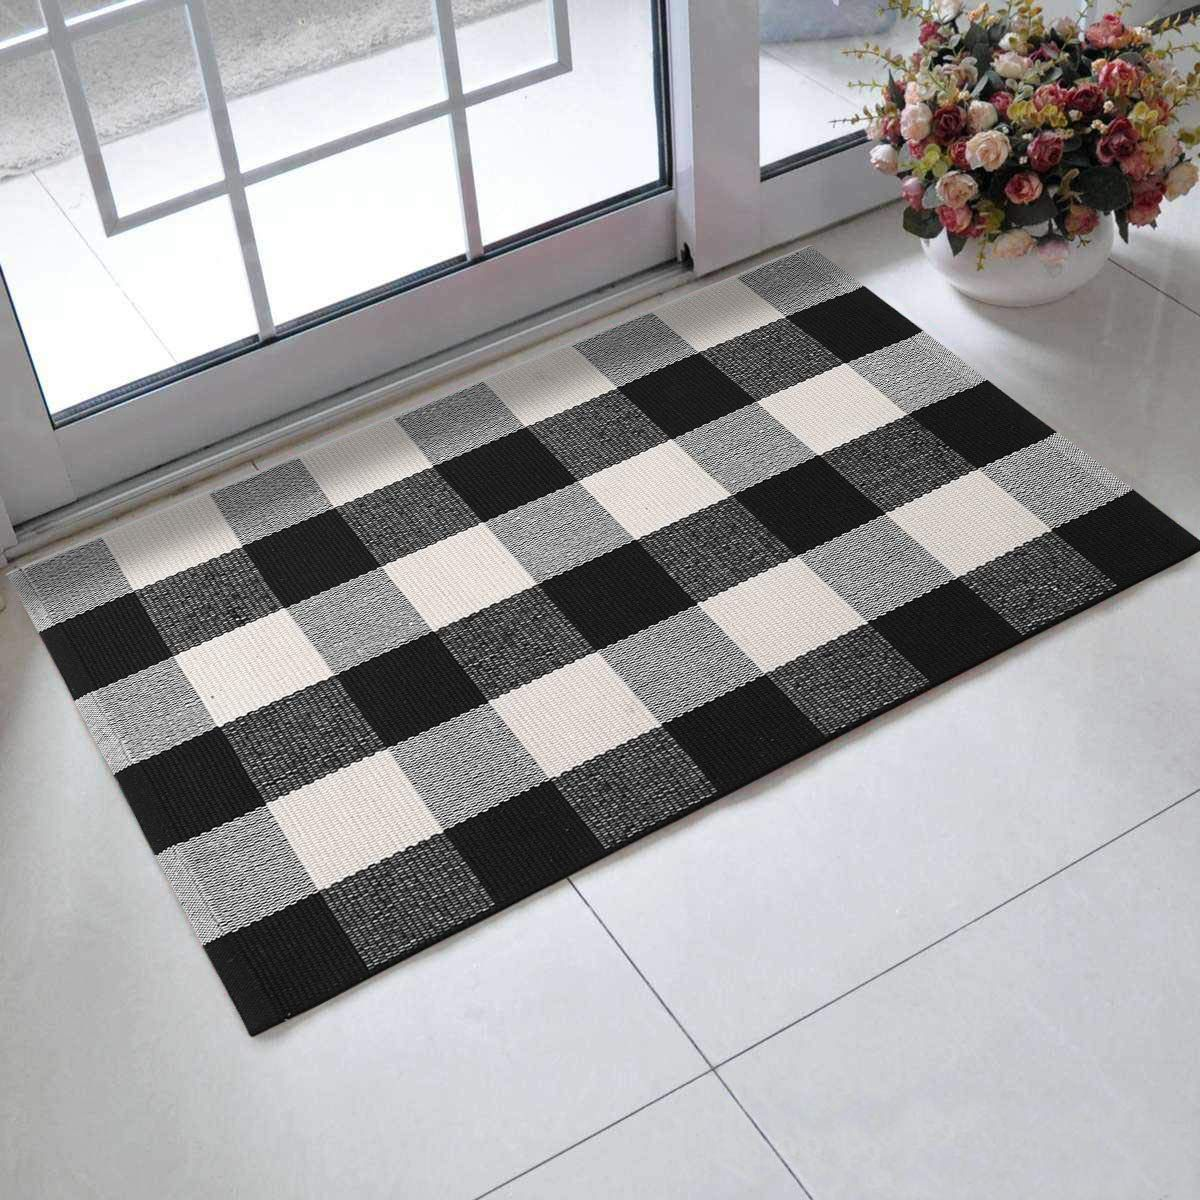 Leevan Cotton Buffalo Plaid Rugs 24 X 35 Checkered Gingham Rug Washable Woven Outdoor Porch Welcome Braided Door Mat For L In 2020 Throw Carpet Plaid Rug Outdoor Porch